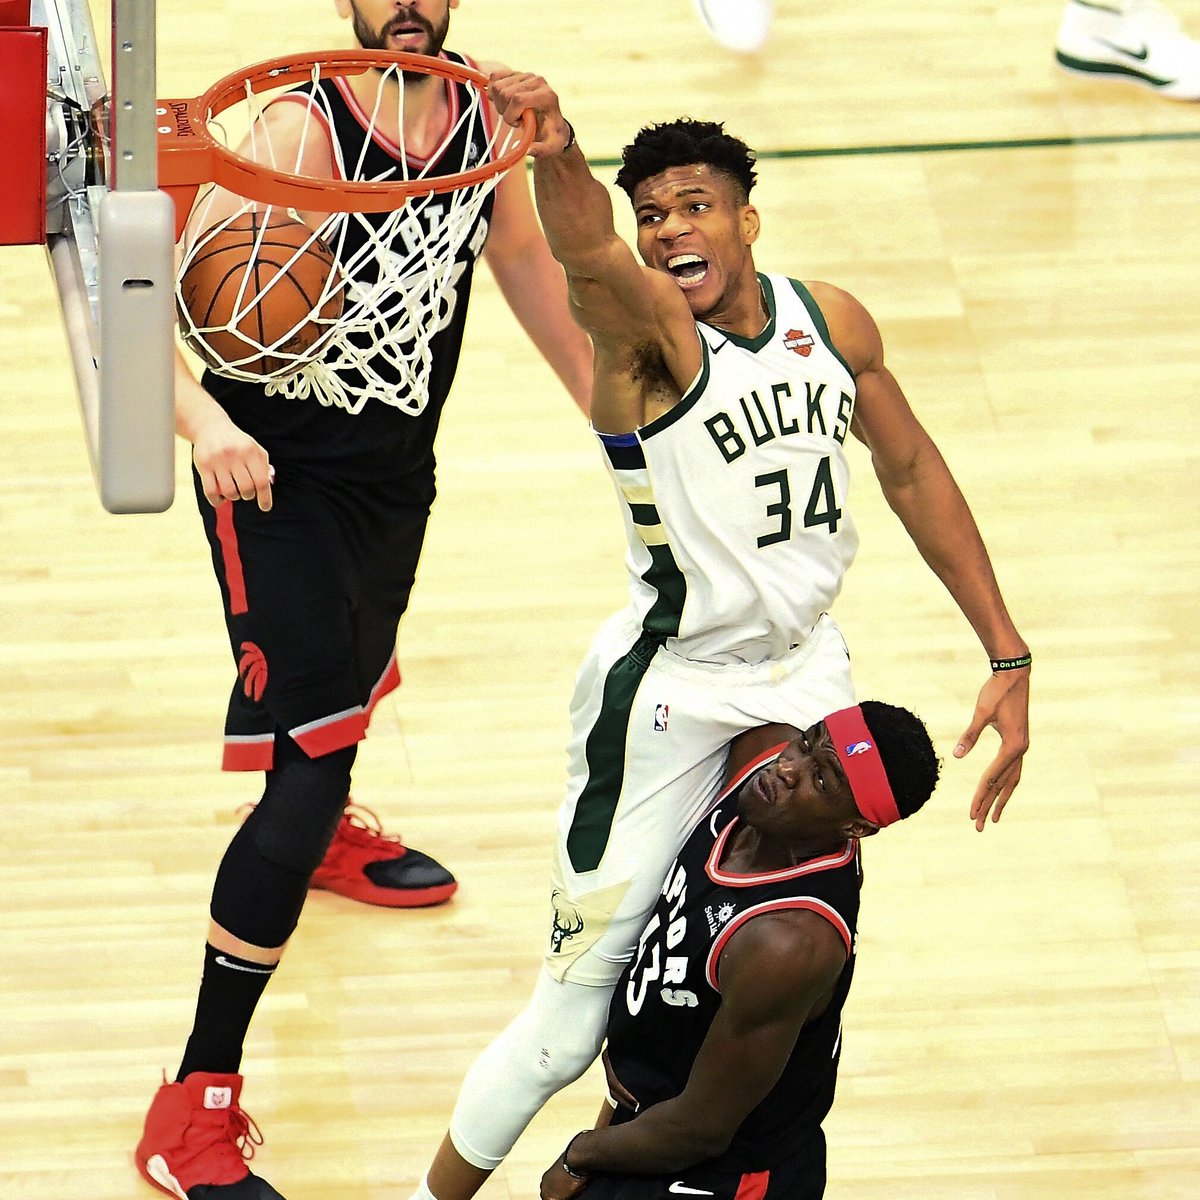 The MVP dominated in the WIN: 30 PTS   17 REB   5 AST   2 BLK   1 STL   50% FG #FearTheDeer